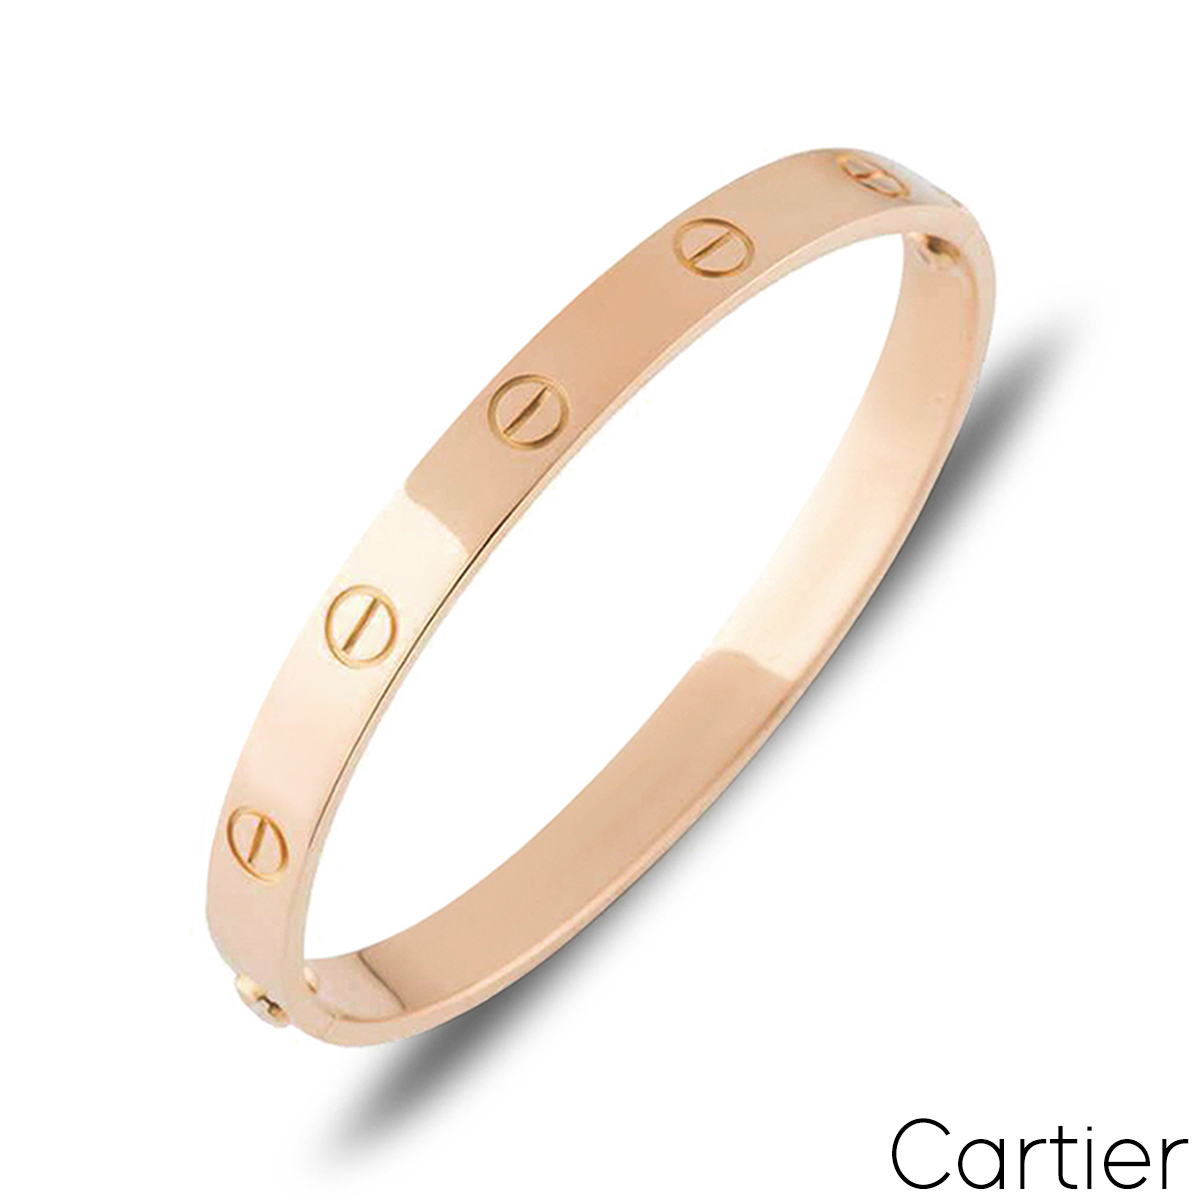 Cartier Rose Gold Plain Love Bracelet Size 20 B6035620